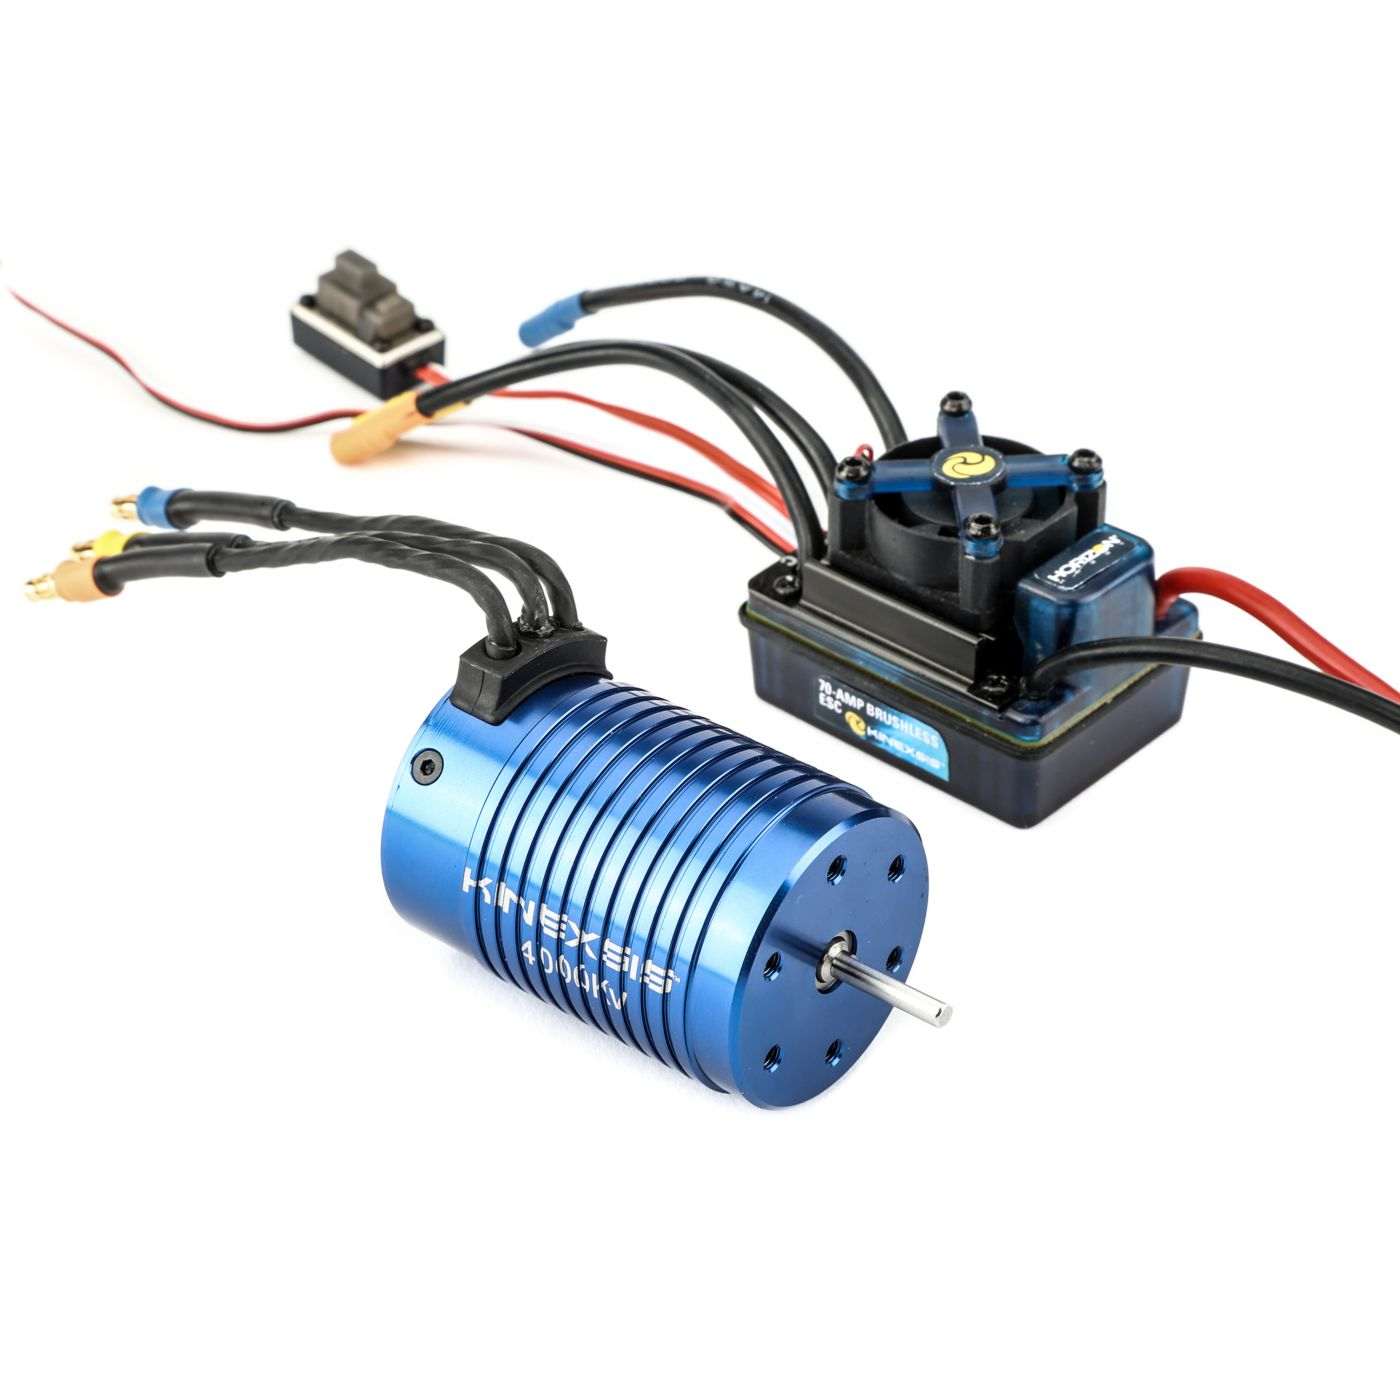 image for 1 10 4 pole 4000kv esc motor combo from horizonhobby [ 1400 x 778 Pixel ]